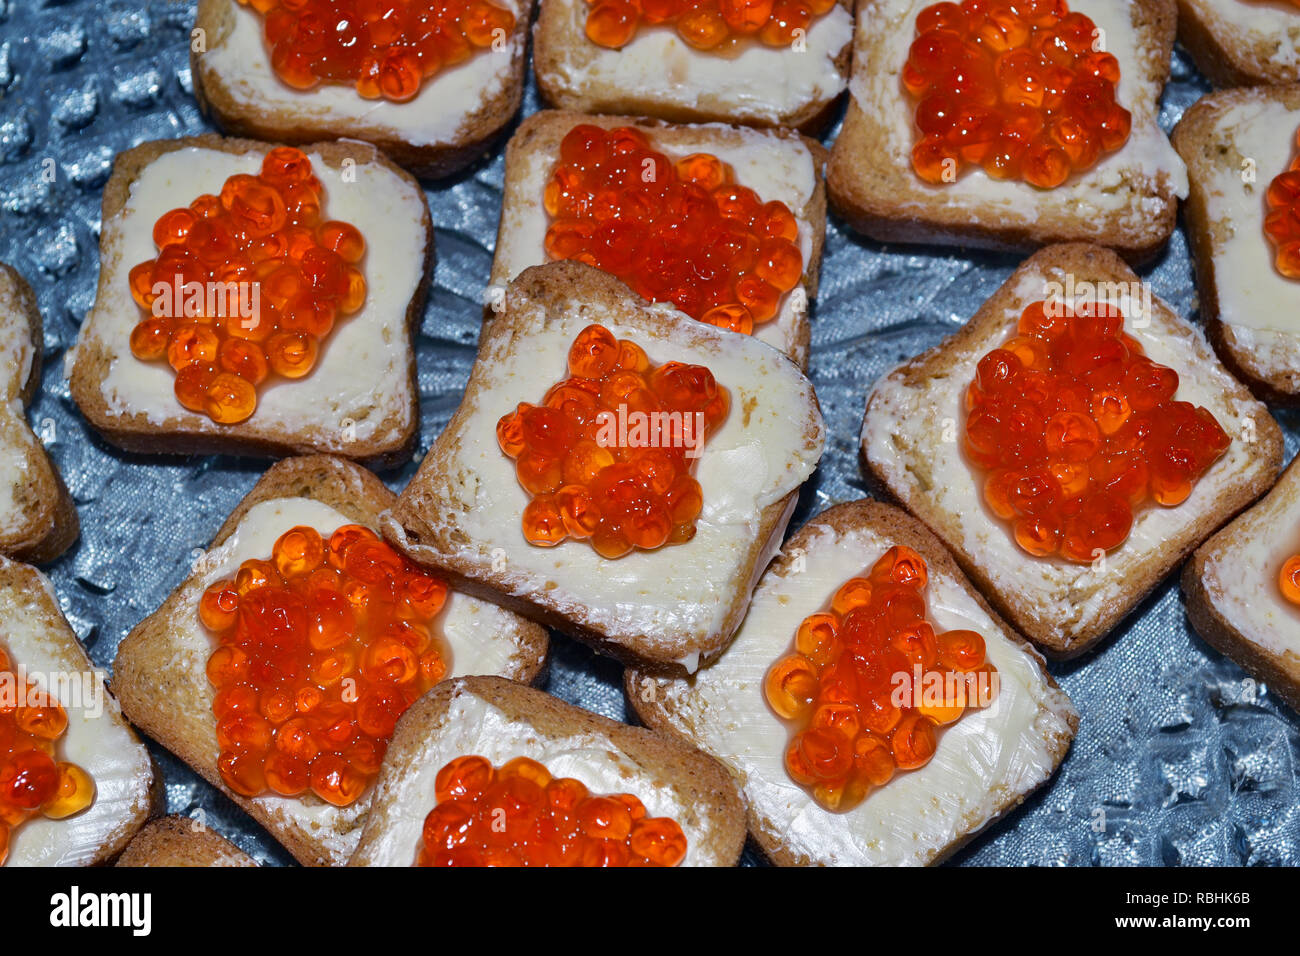 Top view of cheap looking red caviar canape made with rye bread and butter. - Stock Image